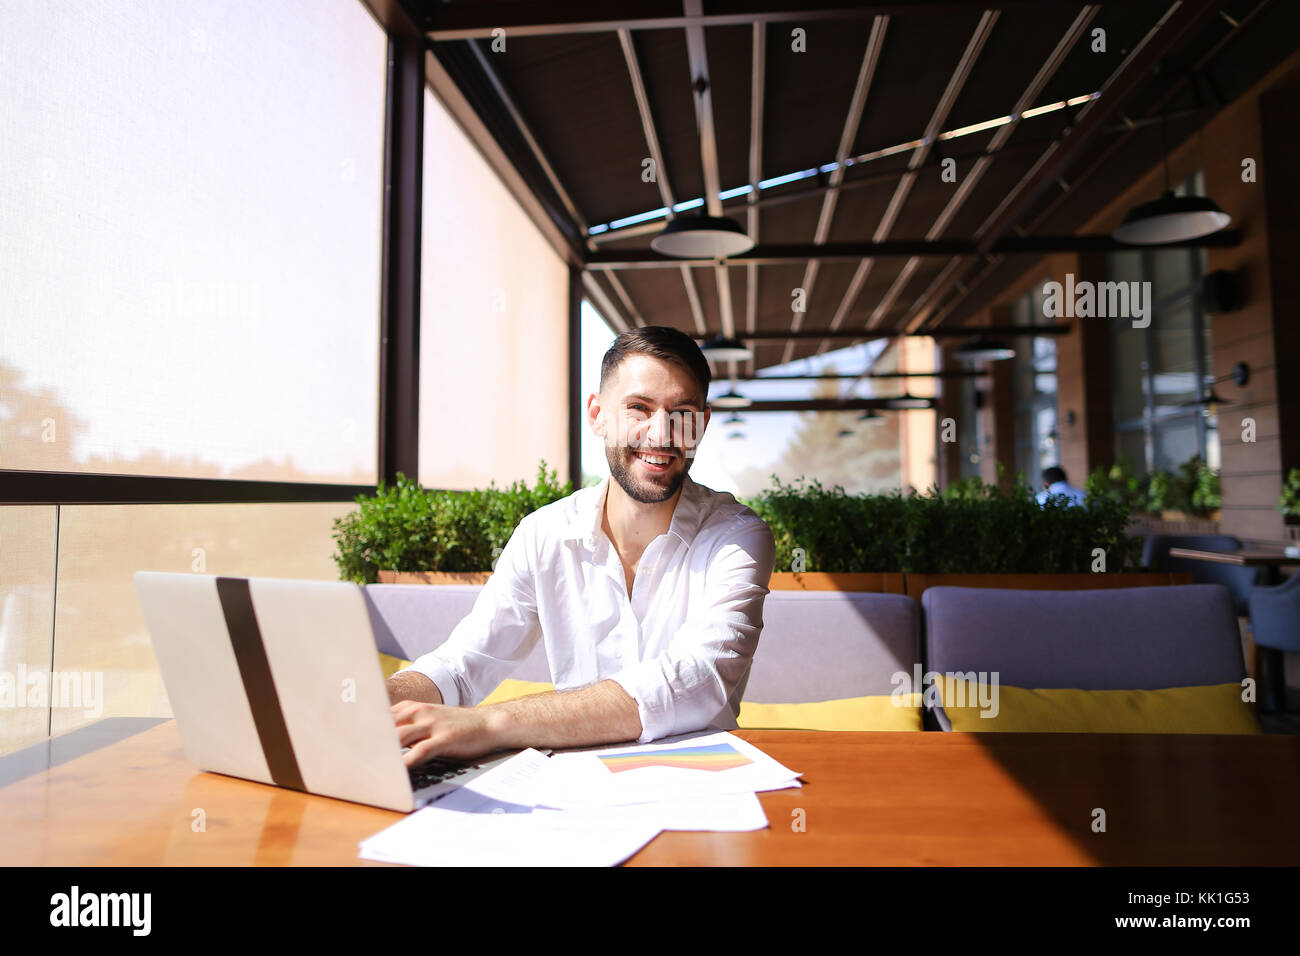 American financier working with laptop and diagram documents at  - Stock Image